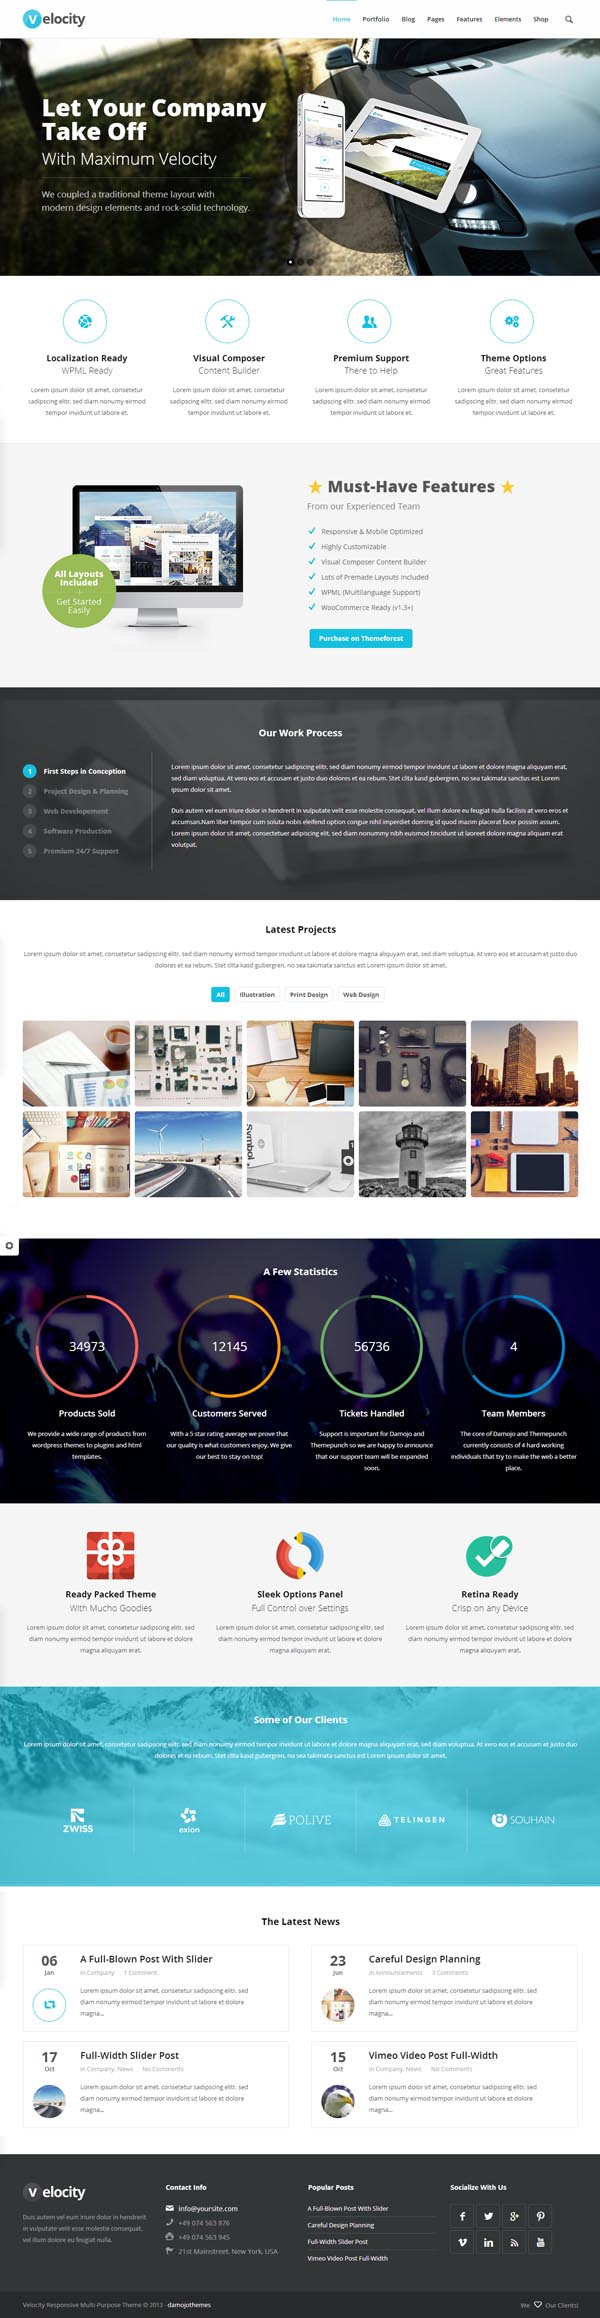 Velocity - Responsive Multi-Purpose WordPress Theme